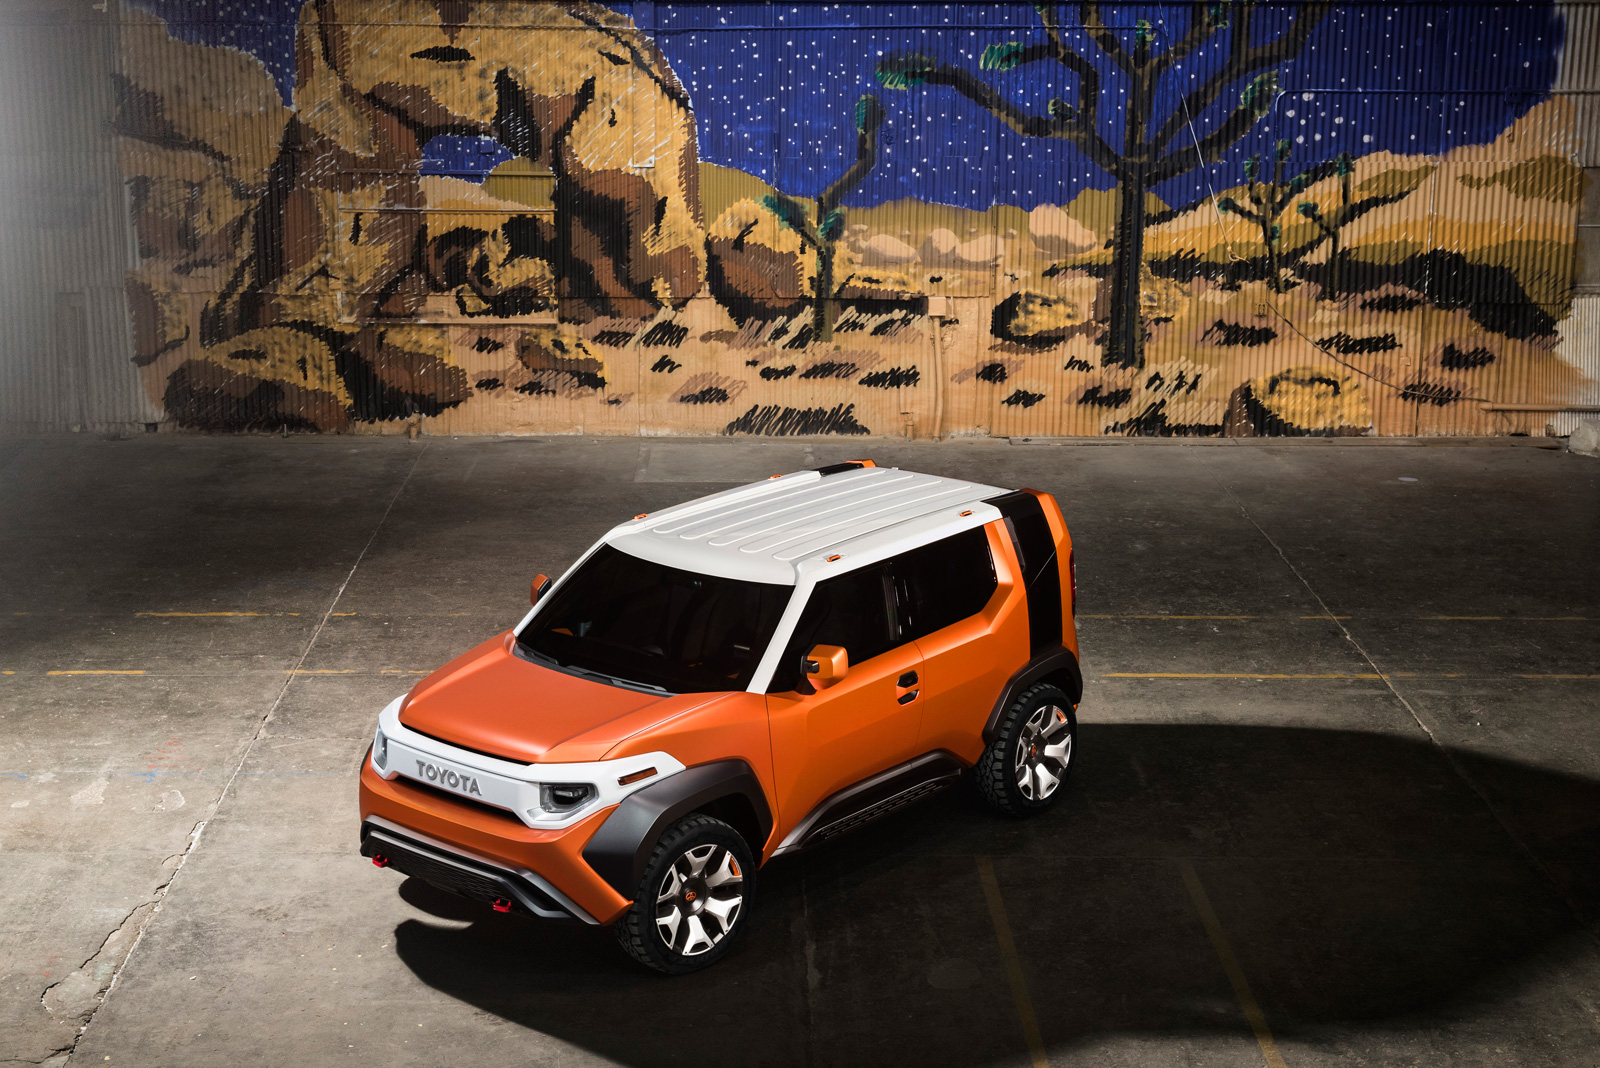 2018 Toyota FT-4X: Is It FJ Cruiser's Succesor Or Not >> Toyota Ft 4x Concept Is Not The Fj Cruiser Successor You